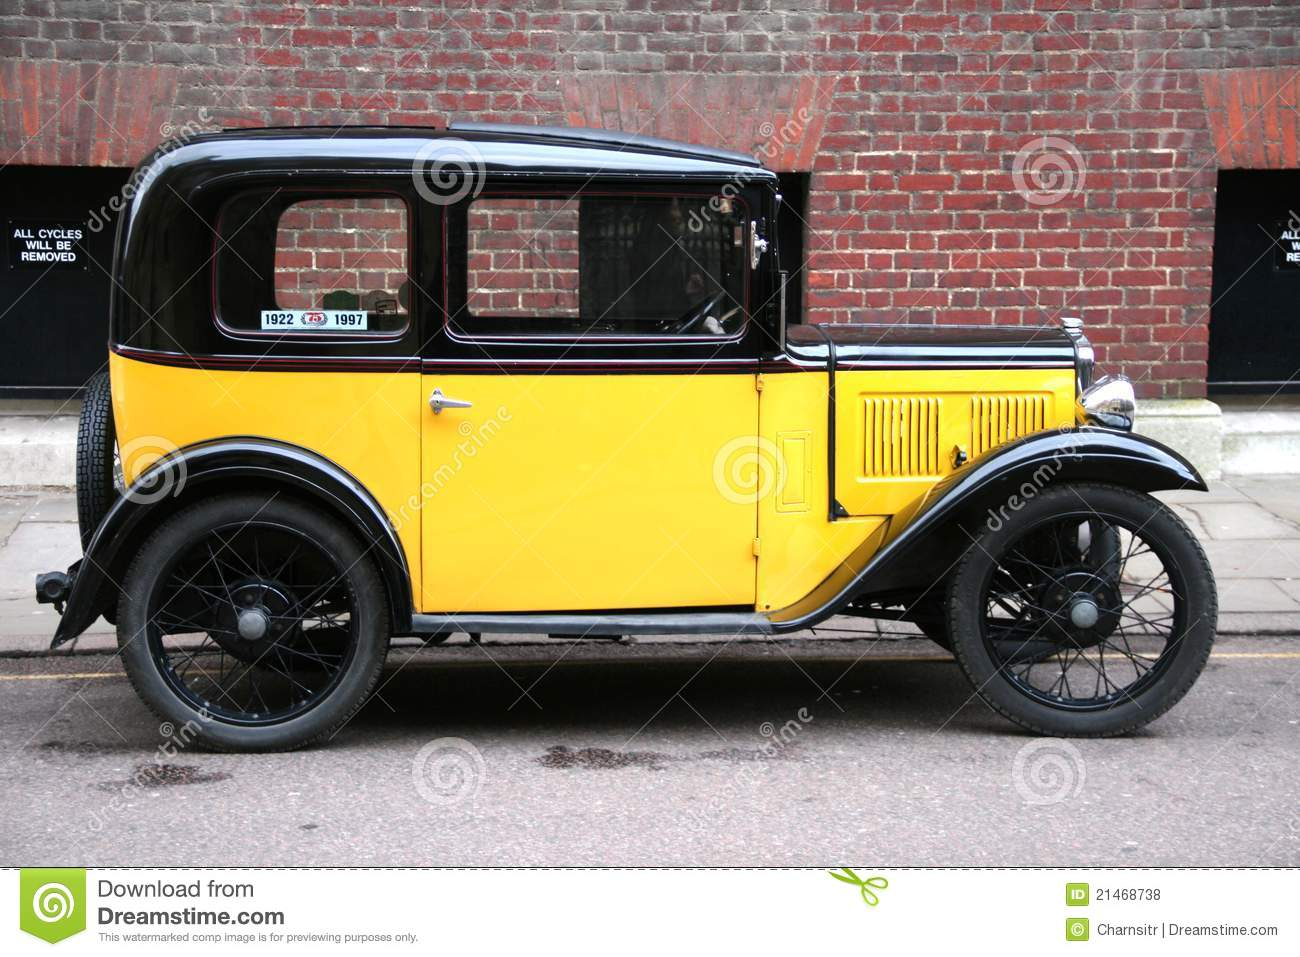 Yellow vintage style car stock photo. Image of icon, passion - 21468738